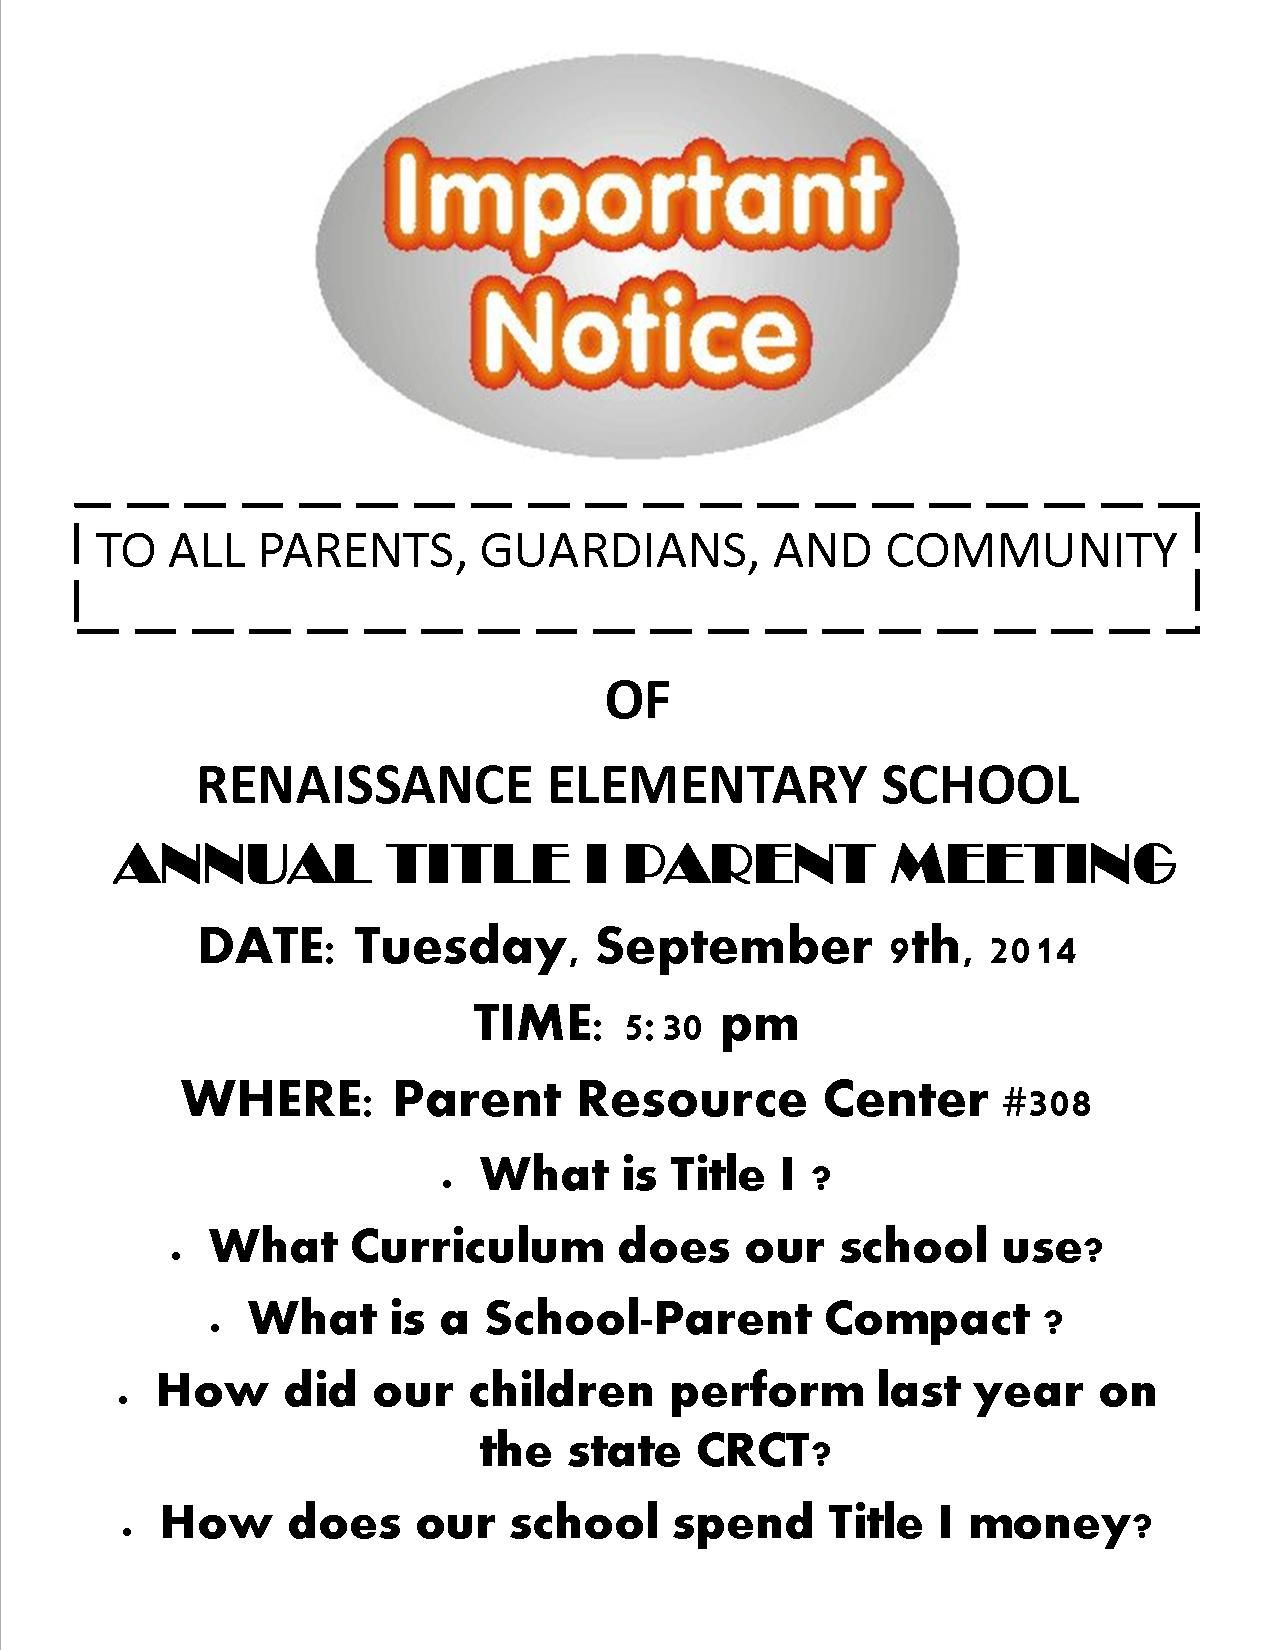 Annual Title I Parent Meeting Flyer